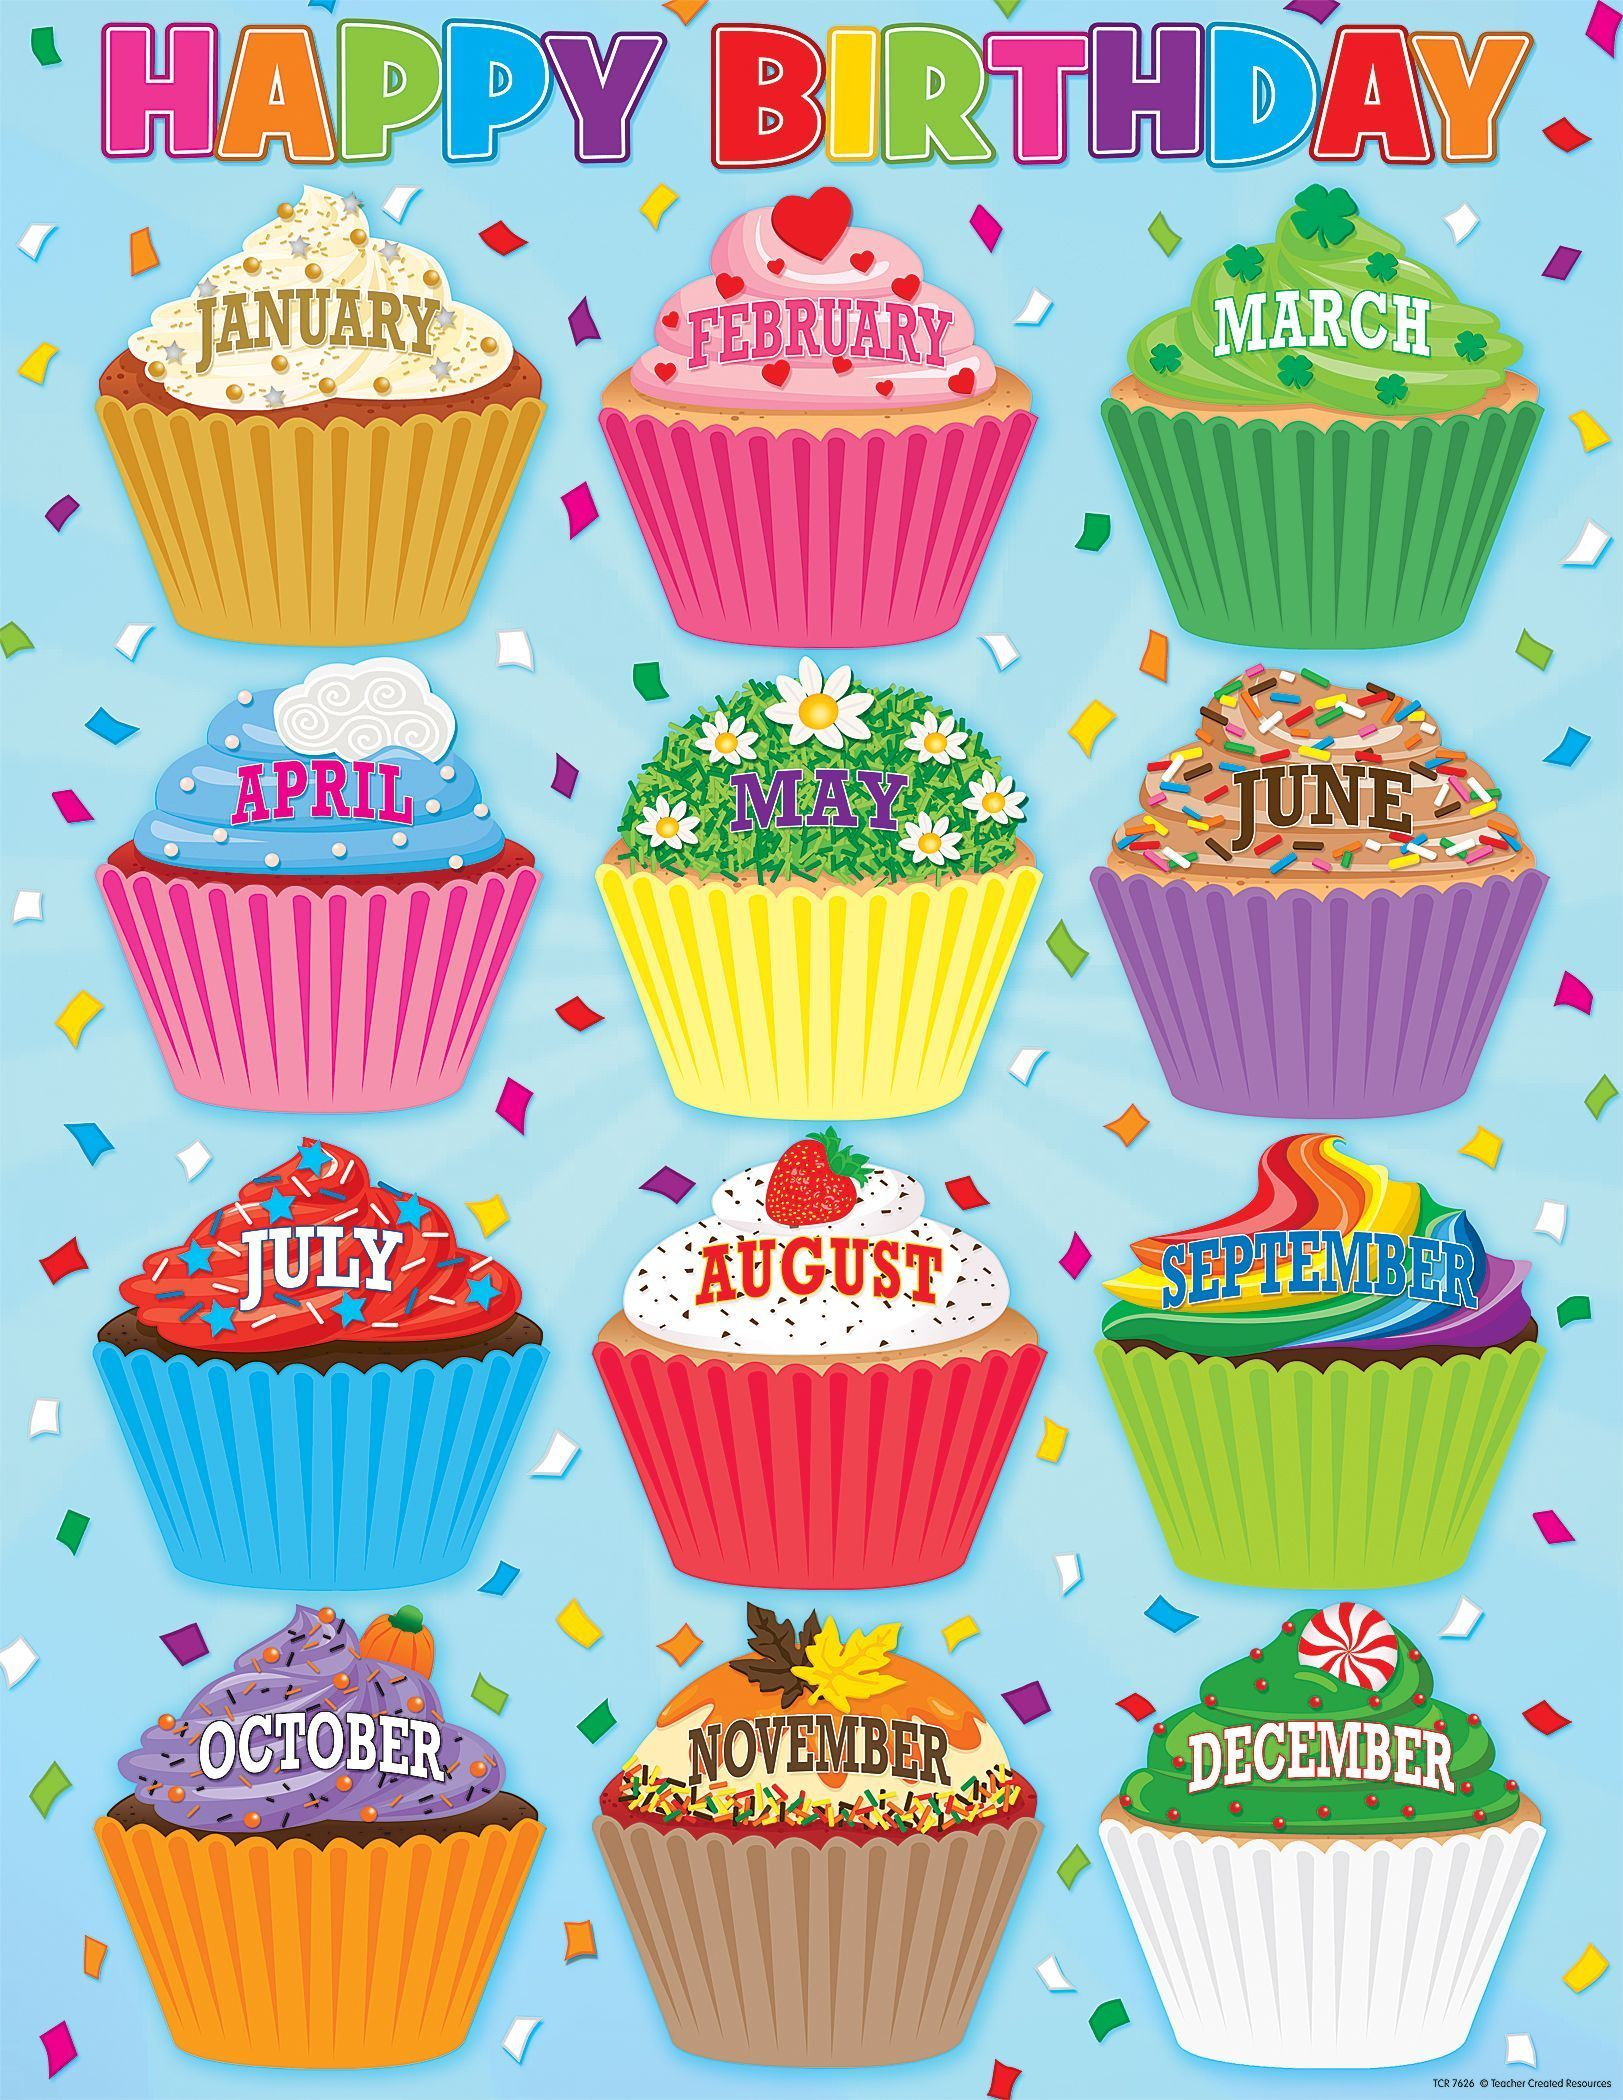 Cupcakes Happy Birthday Chart | Birthday Charts, Classroom intended for Free Printable Cupcake Birthday Chart